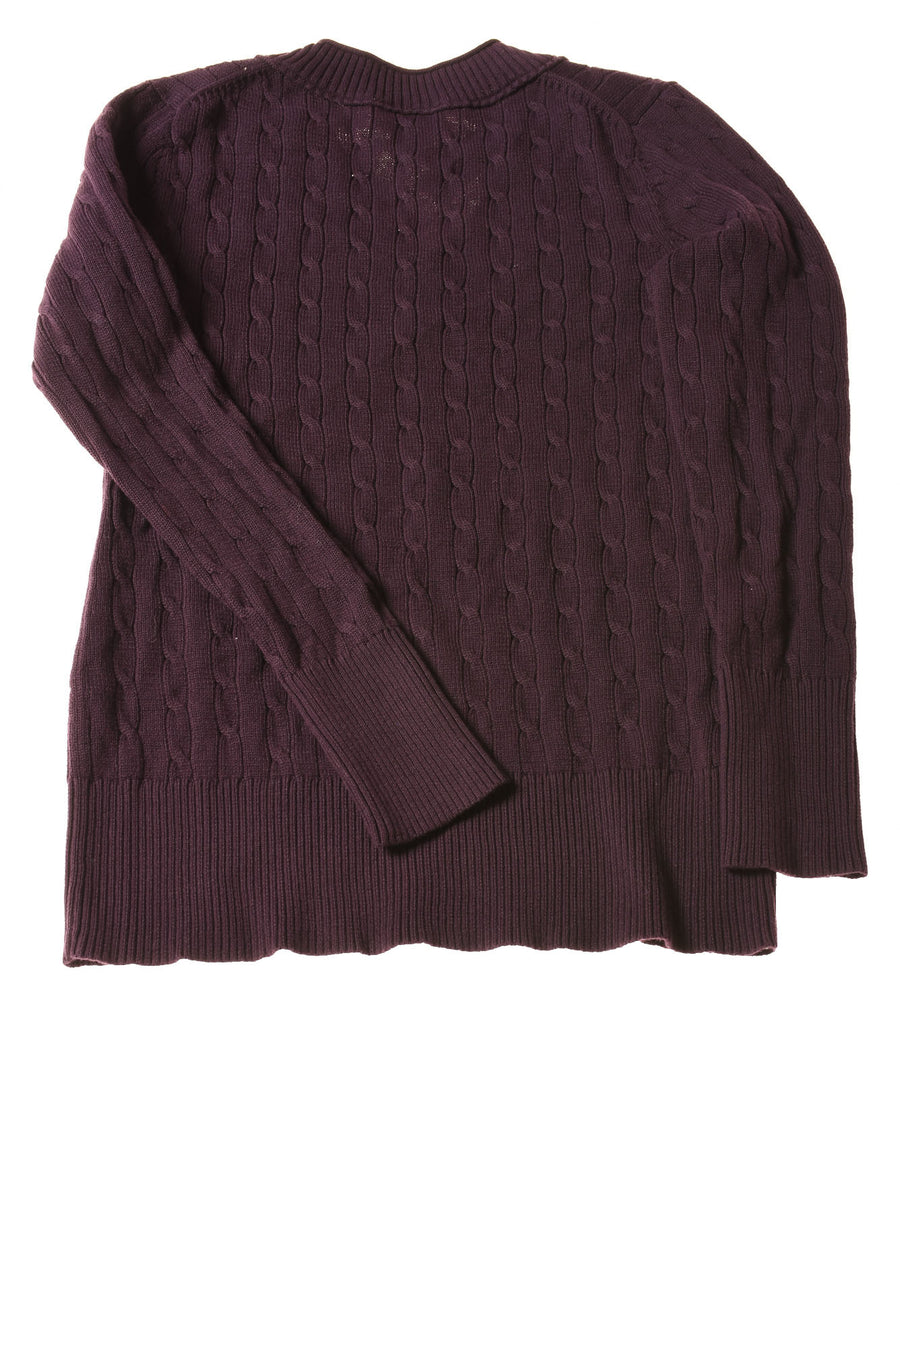 Women's Sweater By Ann Taylor Loft